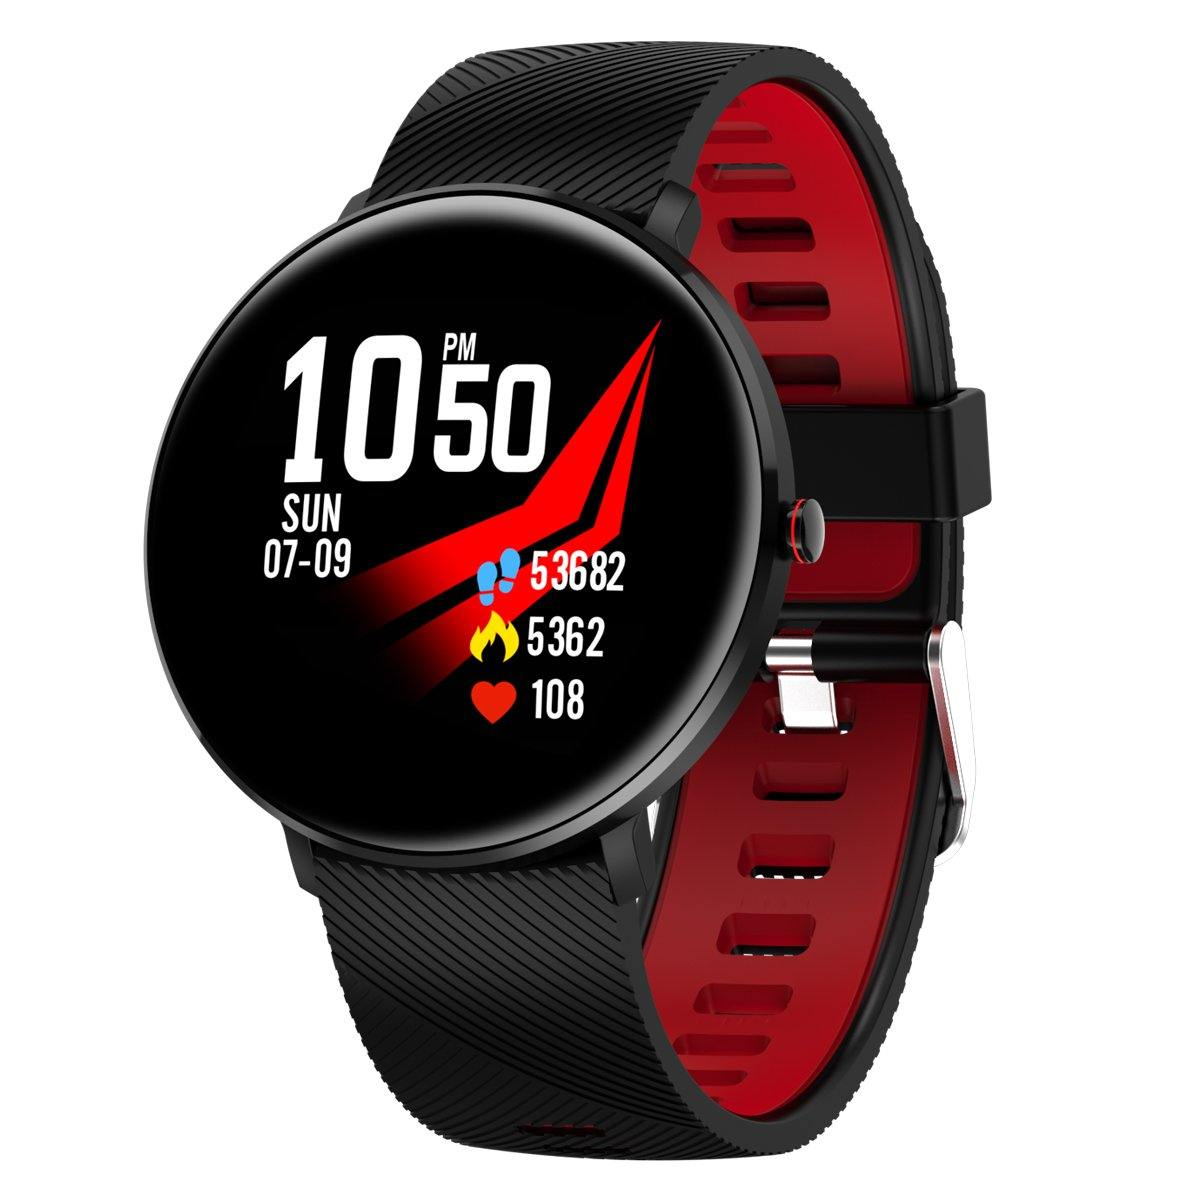 Microwear L10 Fitness/Smartwatch -Red Silicon